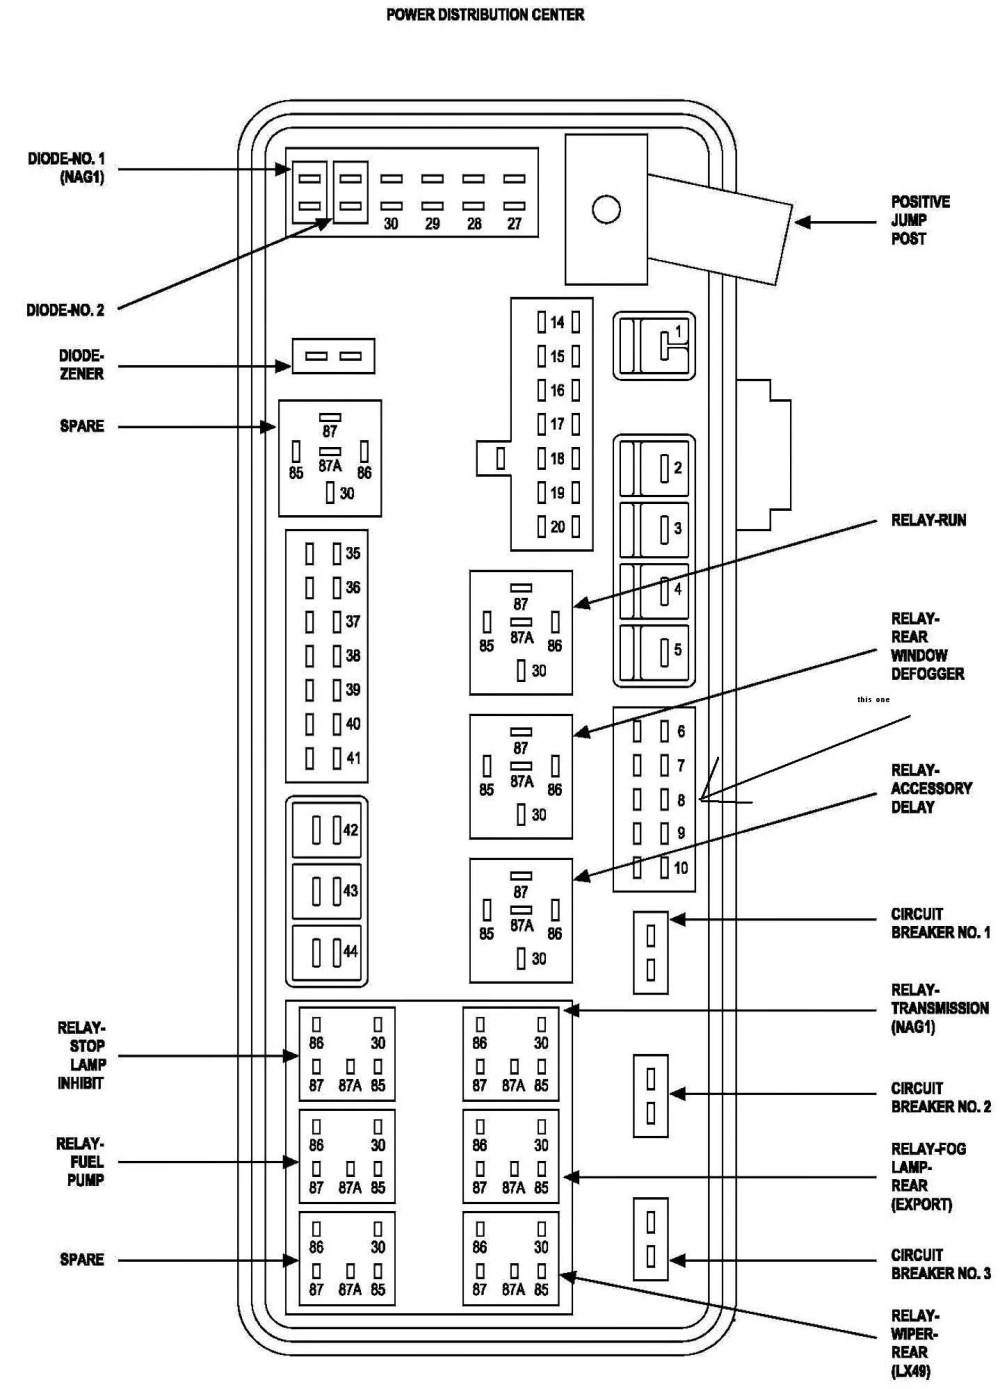 medium resolution of 2014 ram 1500 fuse diagram wiring diagram mega 2014 ram 1500 fuse box diagram